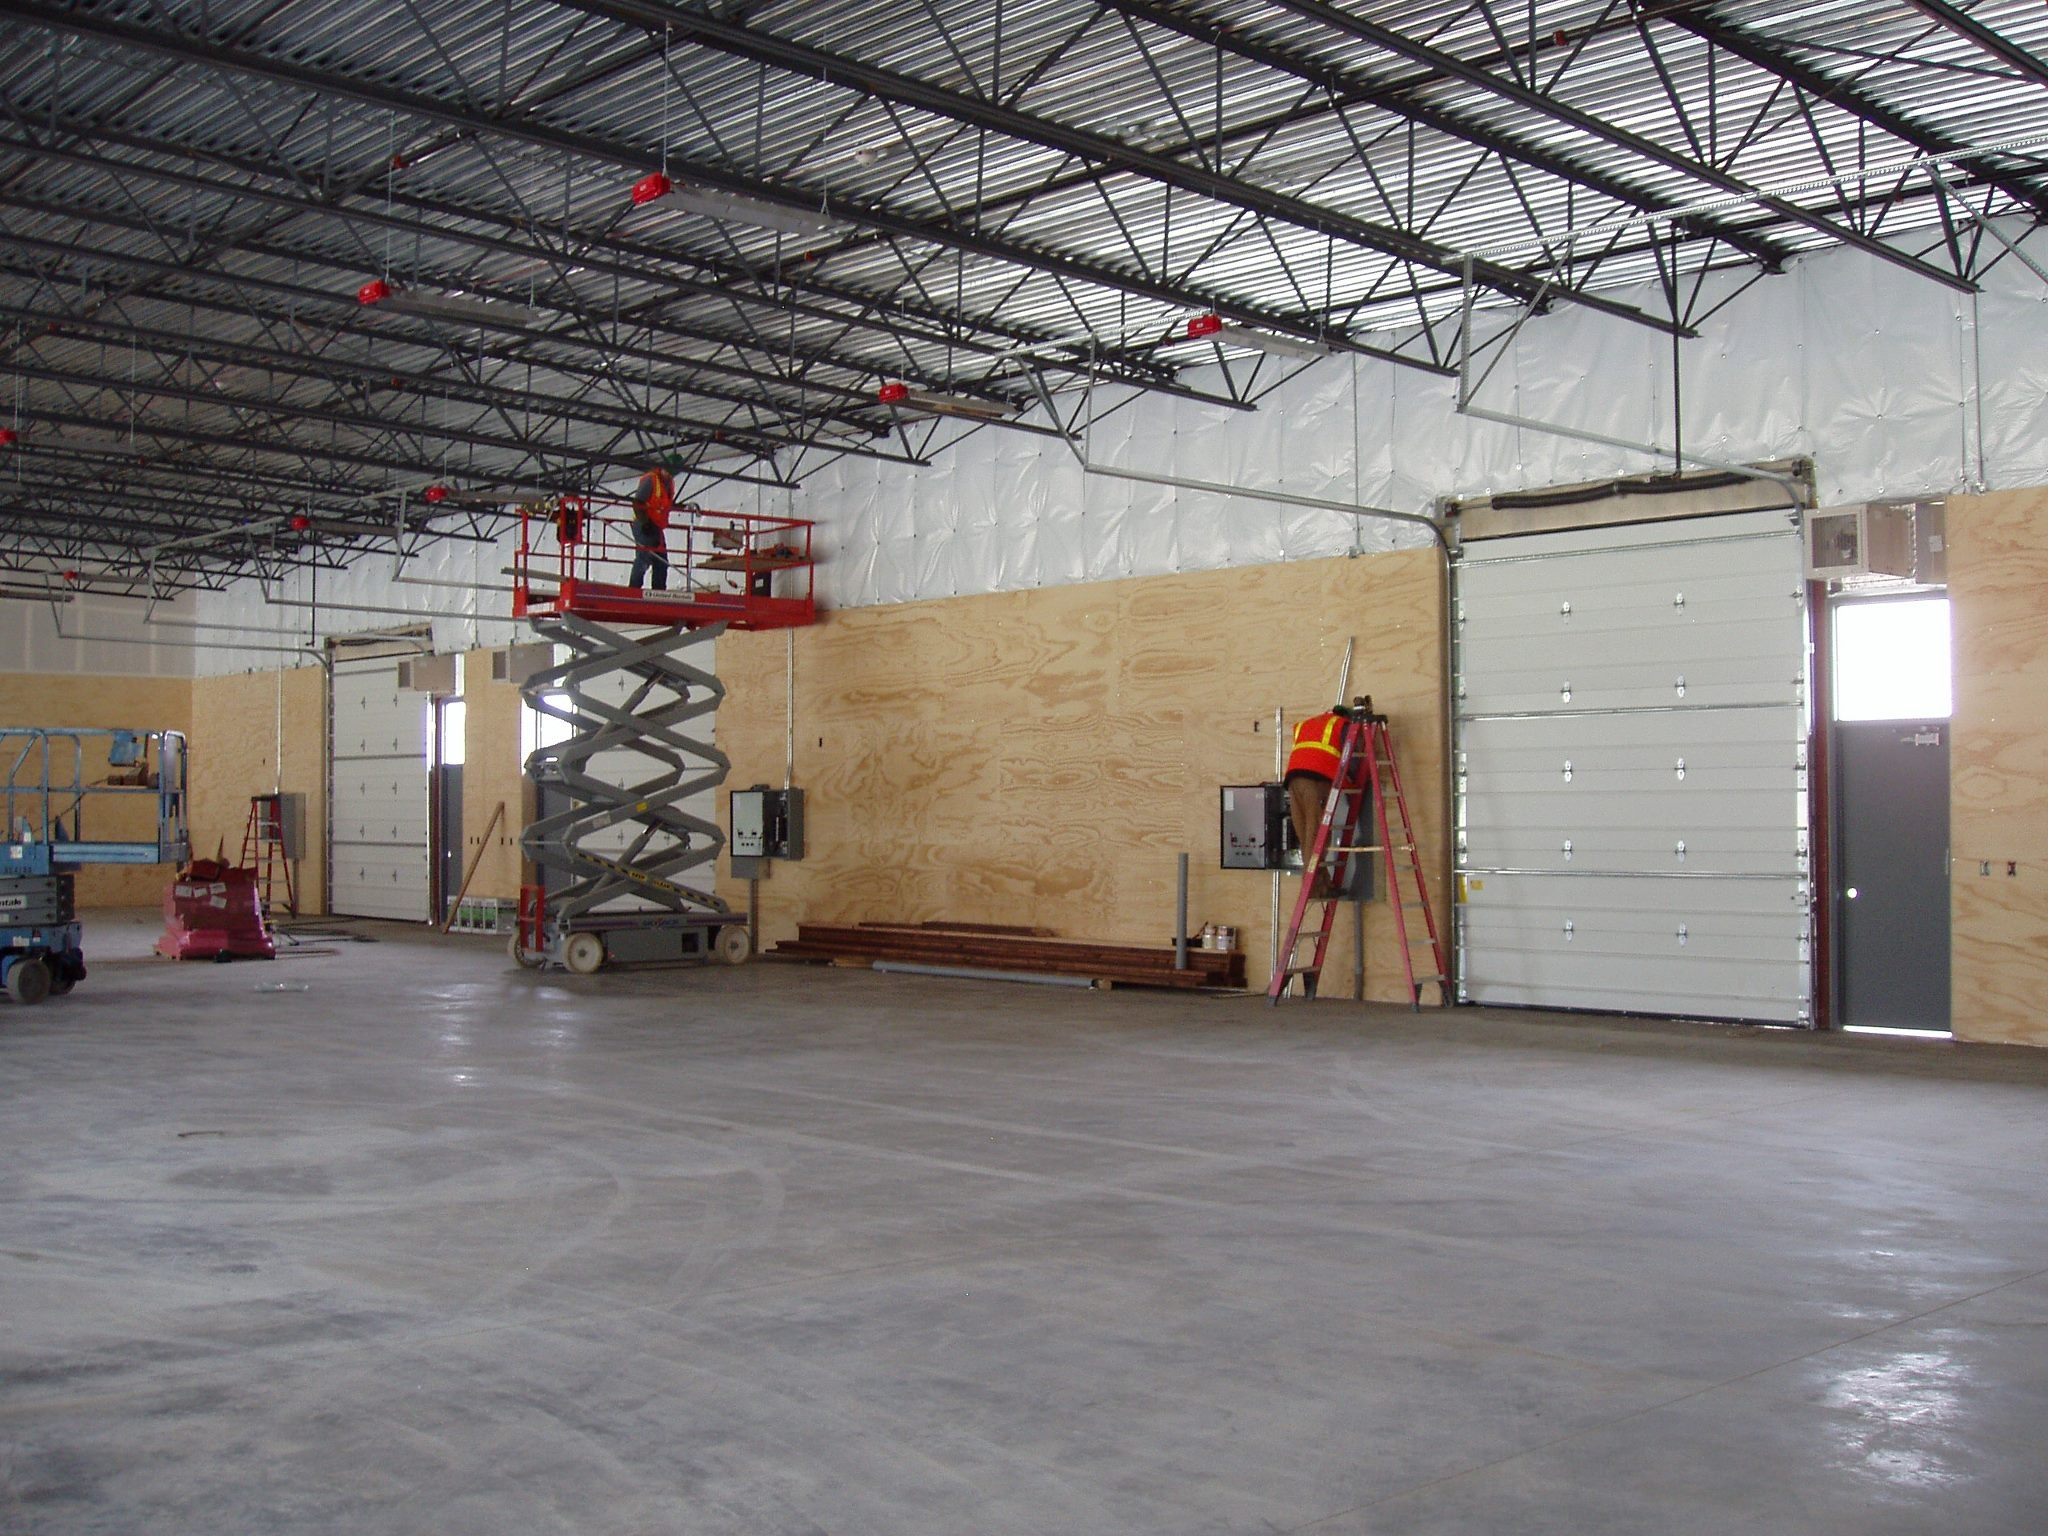 Moving to a warehouse brings more space, but more responsibility